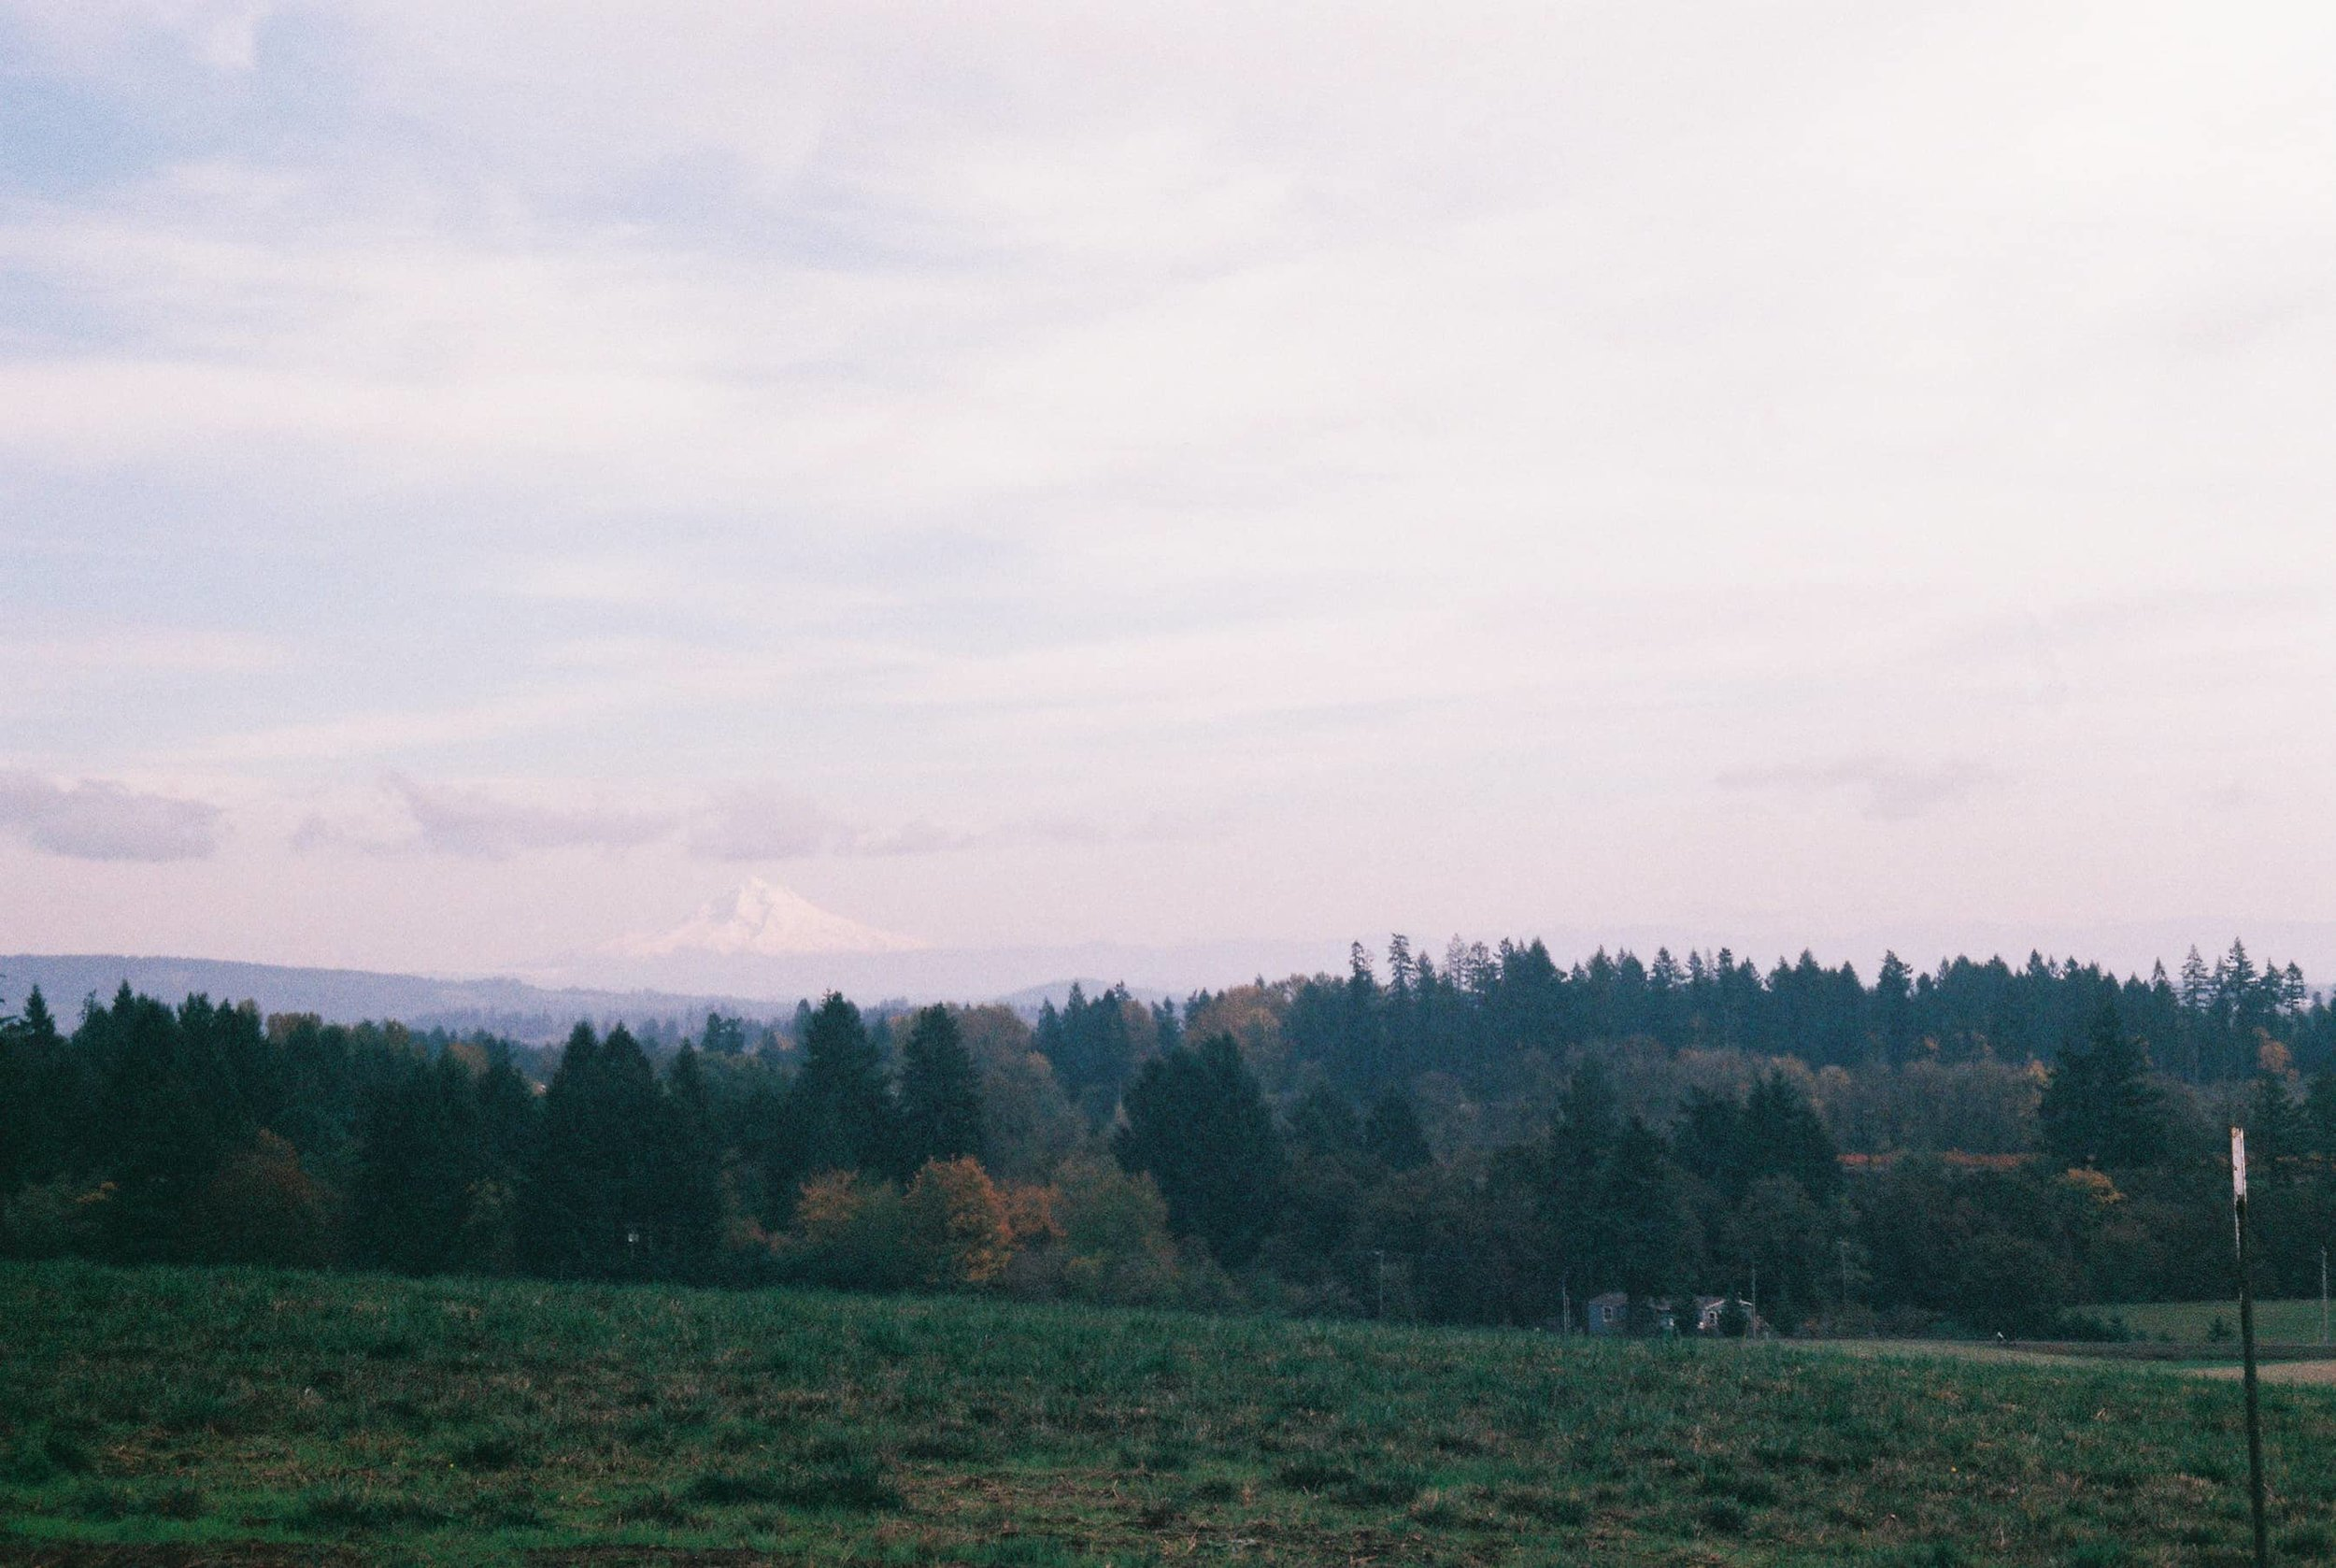 Mt. Hood in the distance from Stoller Winery